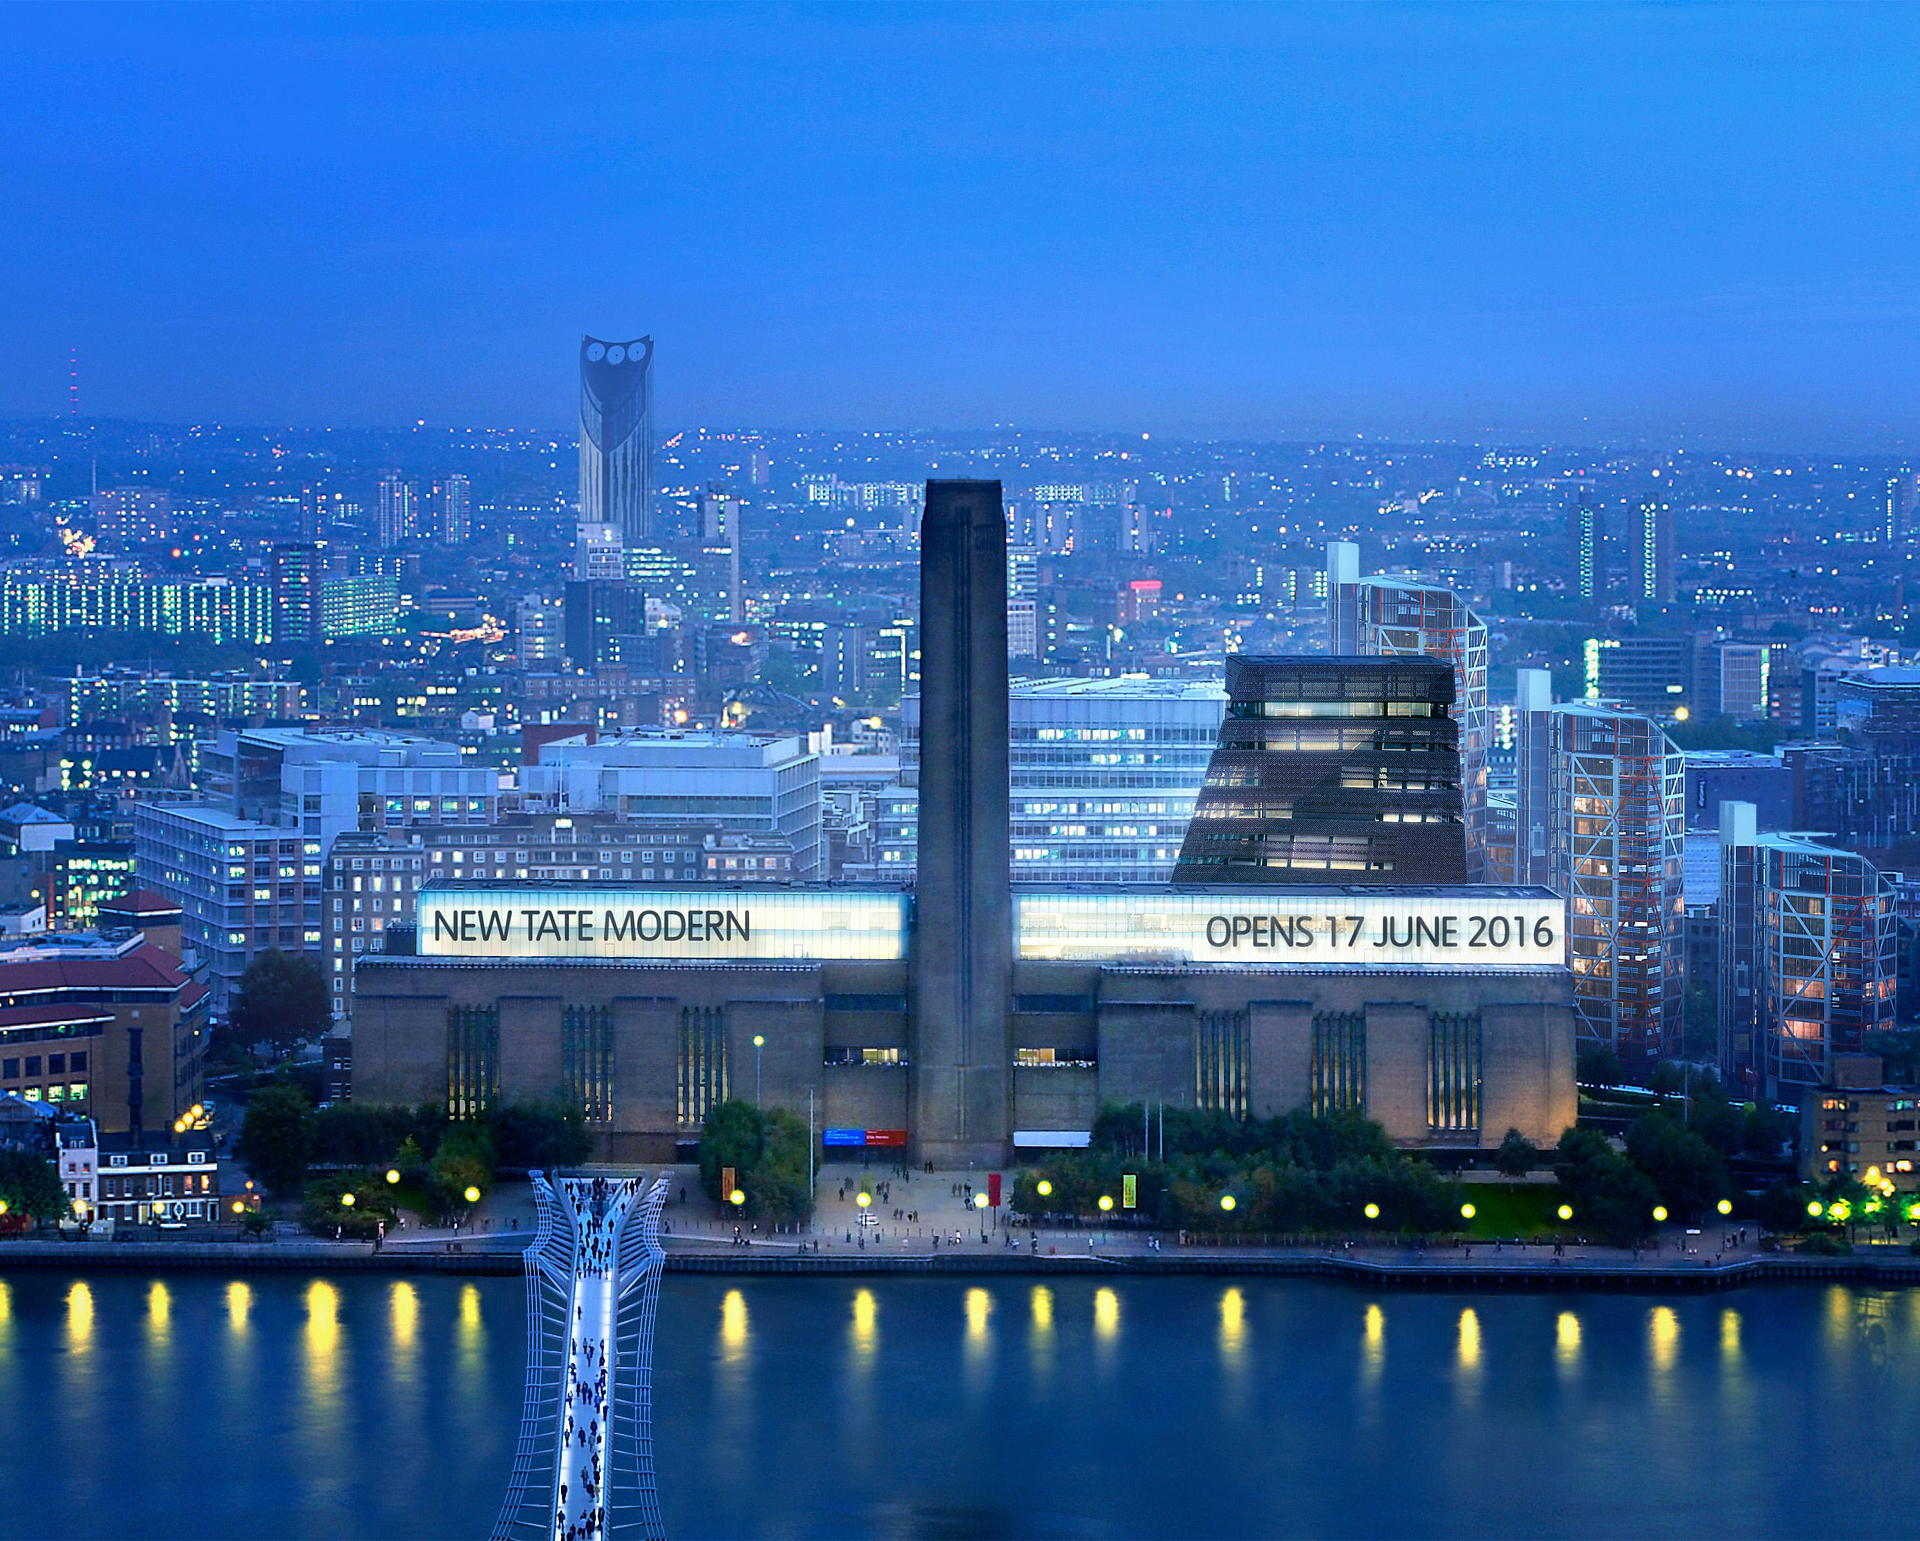 Mustsee exhibitions at the Tate Modern London | Livegreenblog